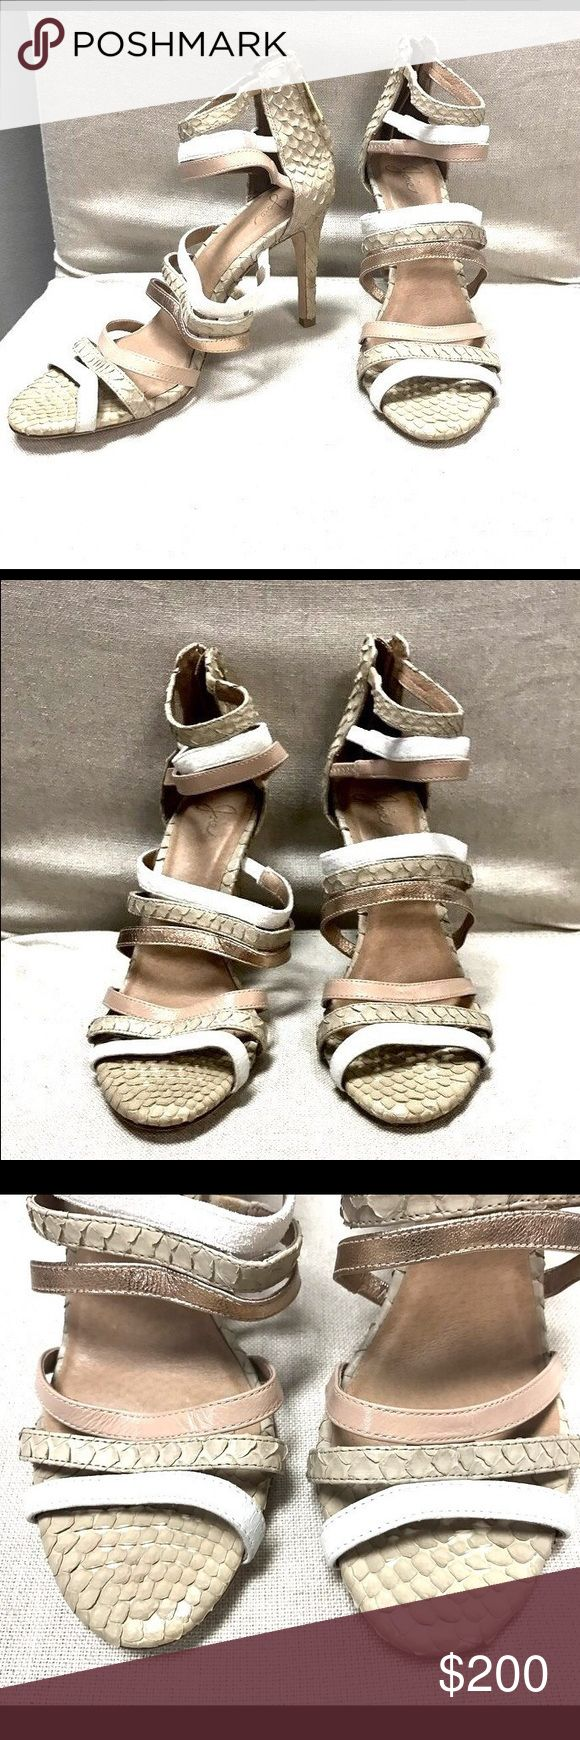 """Joie metallic strappy heels Saks Fifth Ave Joie metallic strappy heels Saks Fifth Ave Size 7 Textured scale leather Zip-up closure with 3.75"""" heel height Joie Shoes Heels"""